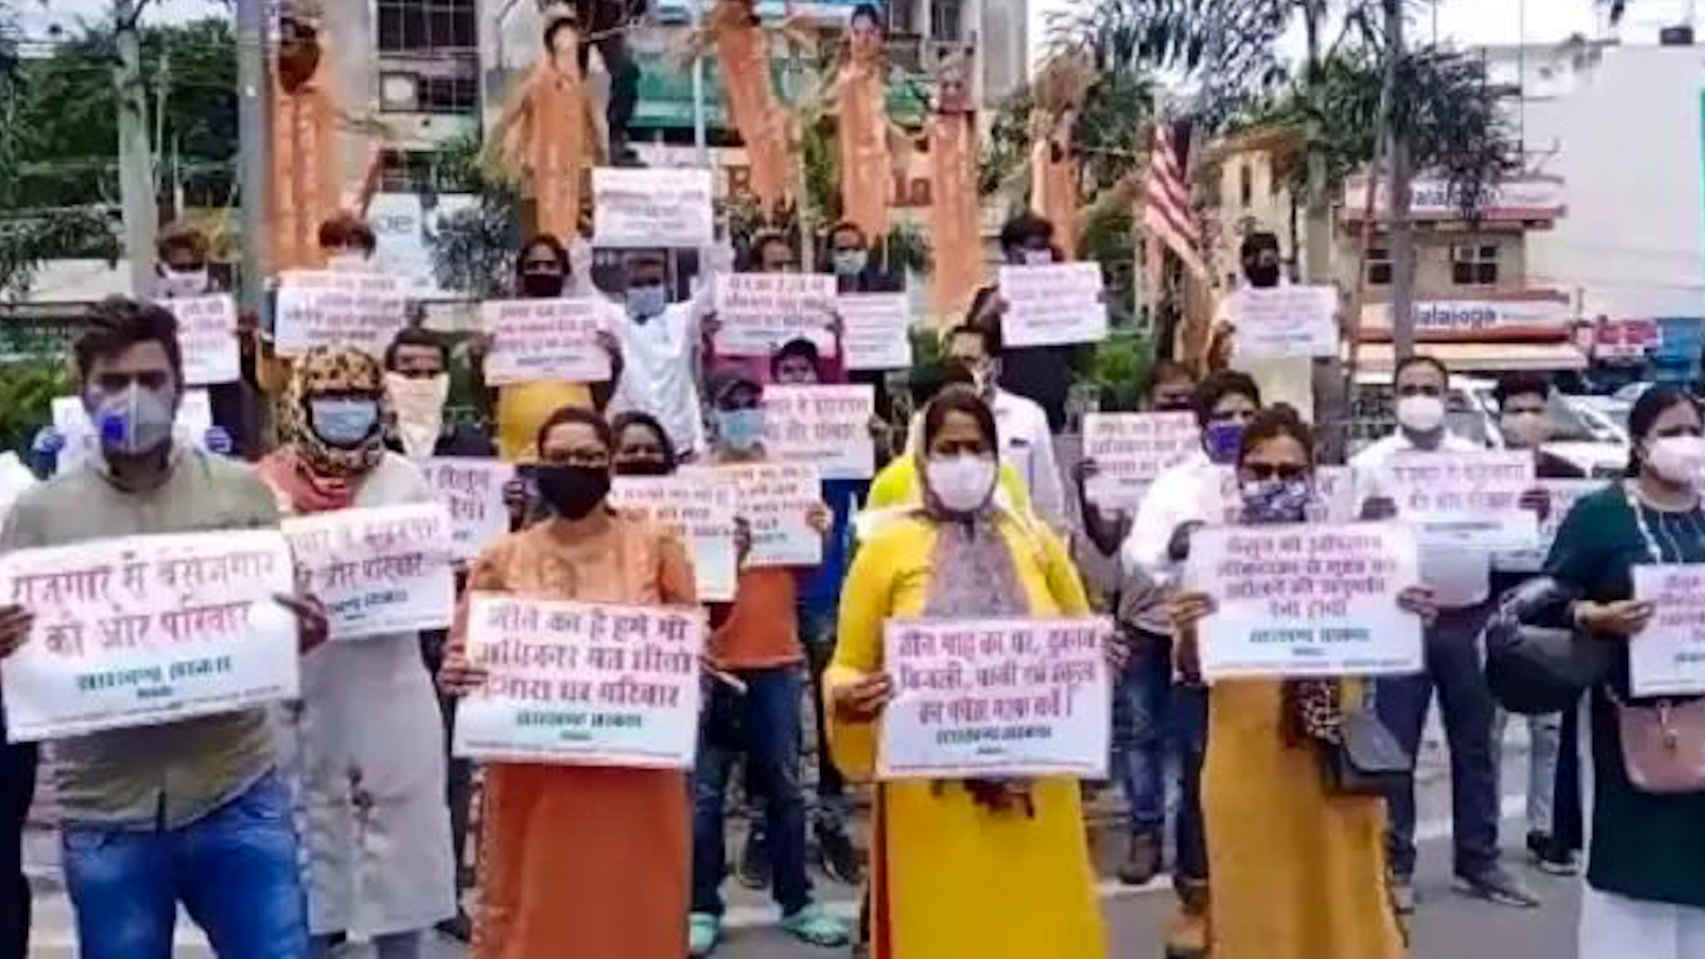 Jharkhand Salon and Parlor Association protested at Albert Ekka Chowk on Main Road, Rajdhani Ranchi. People from Ranchi, Jamshedpur, Chaibasa and several other districts of the state were present in this demonstration demanding to let them open their parlors and salons.